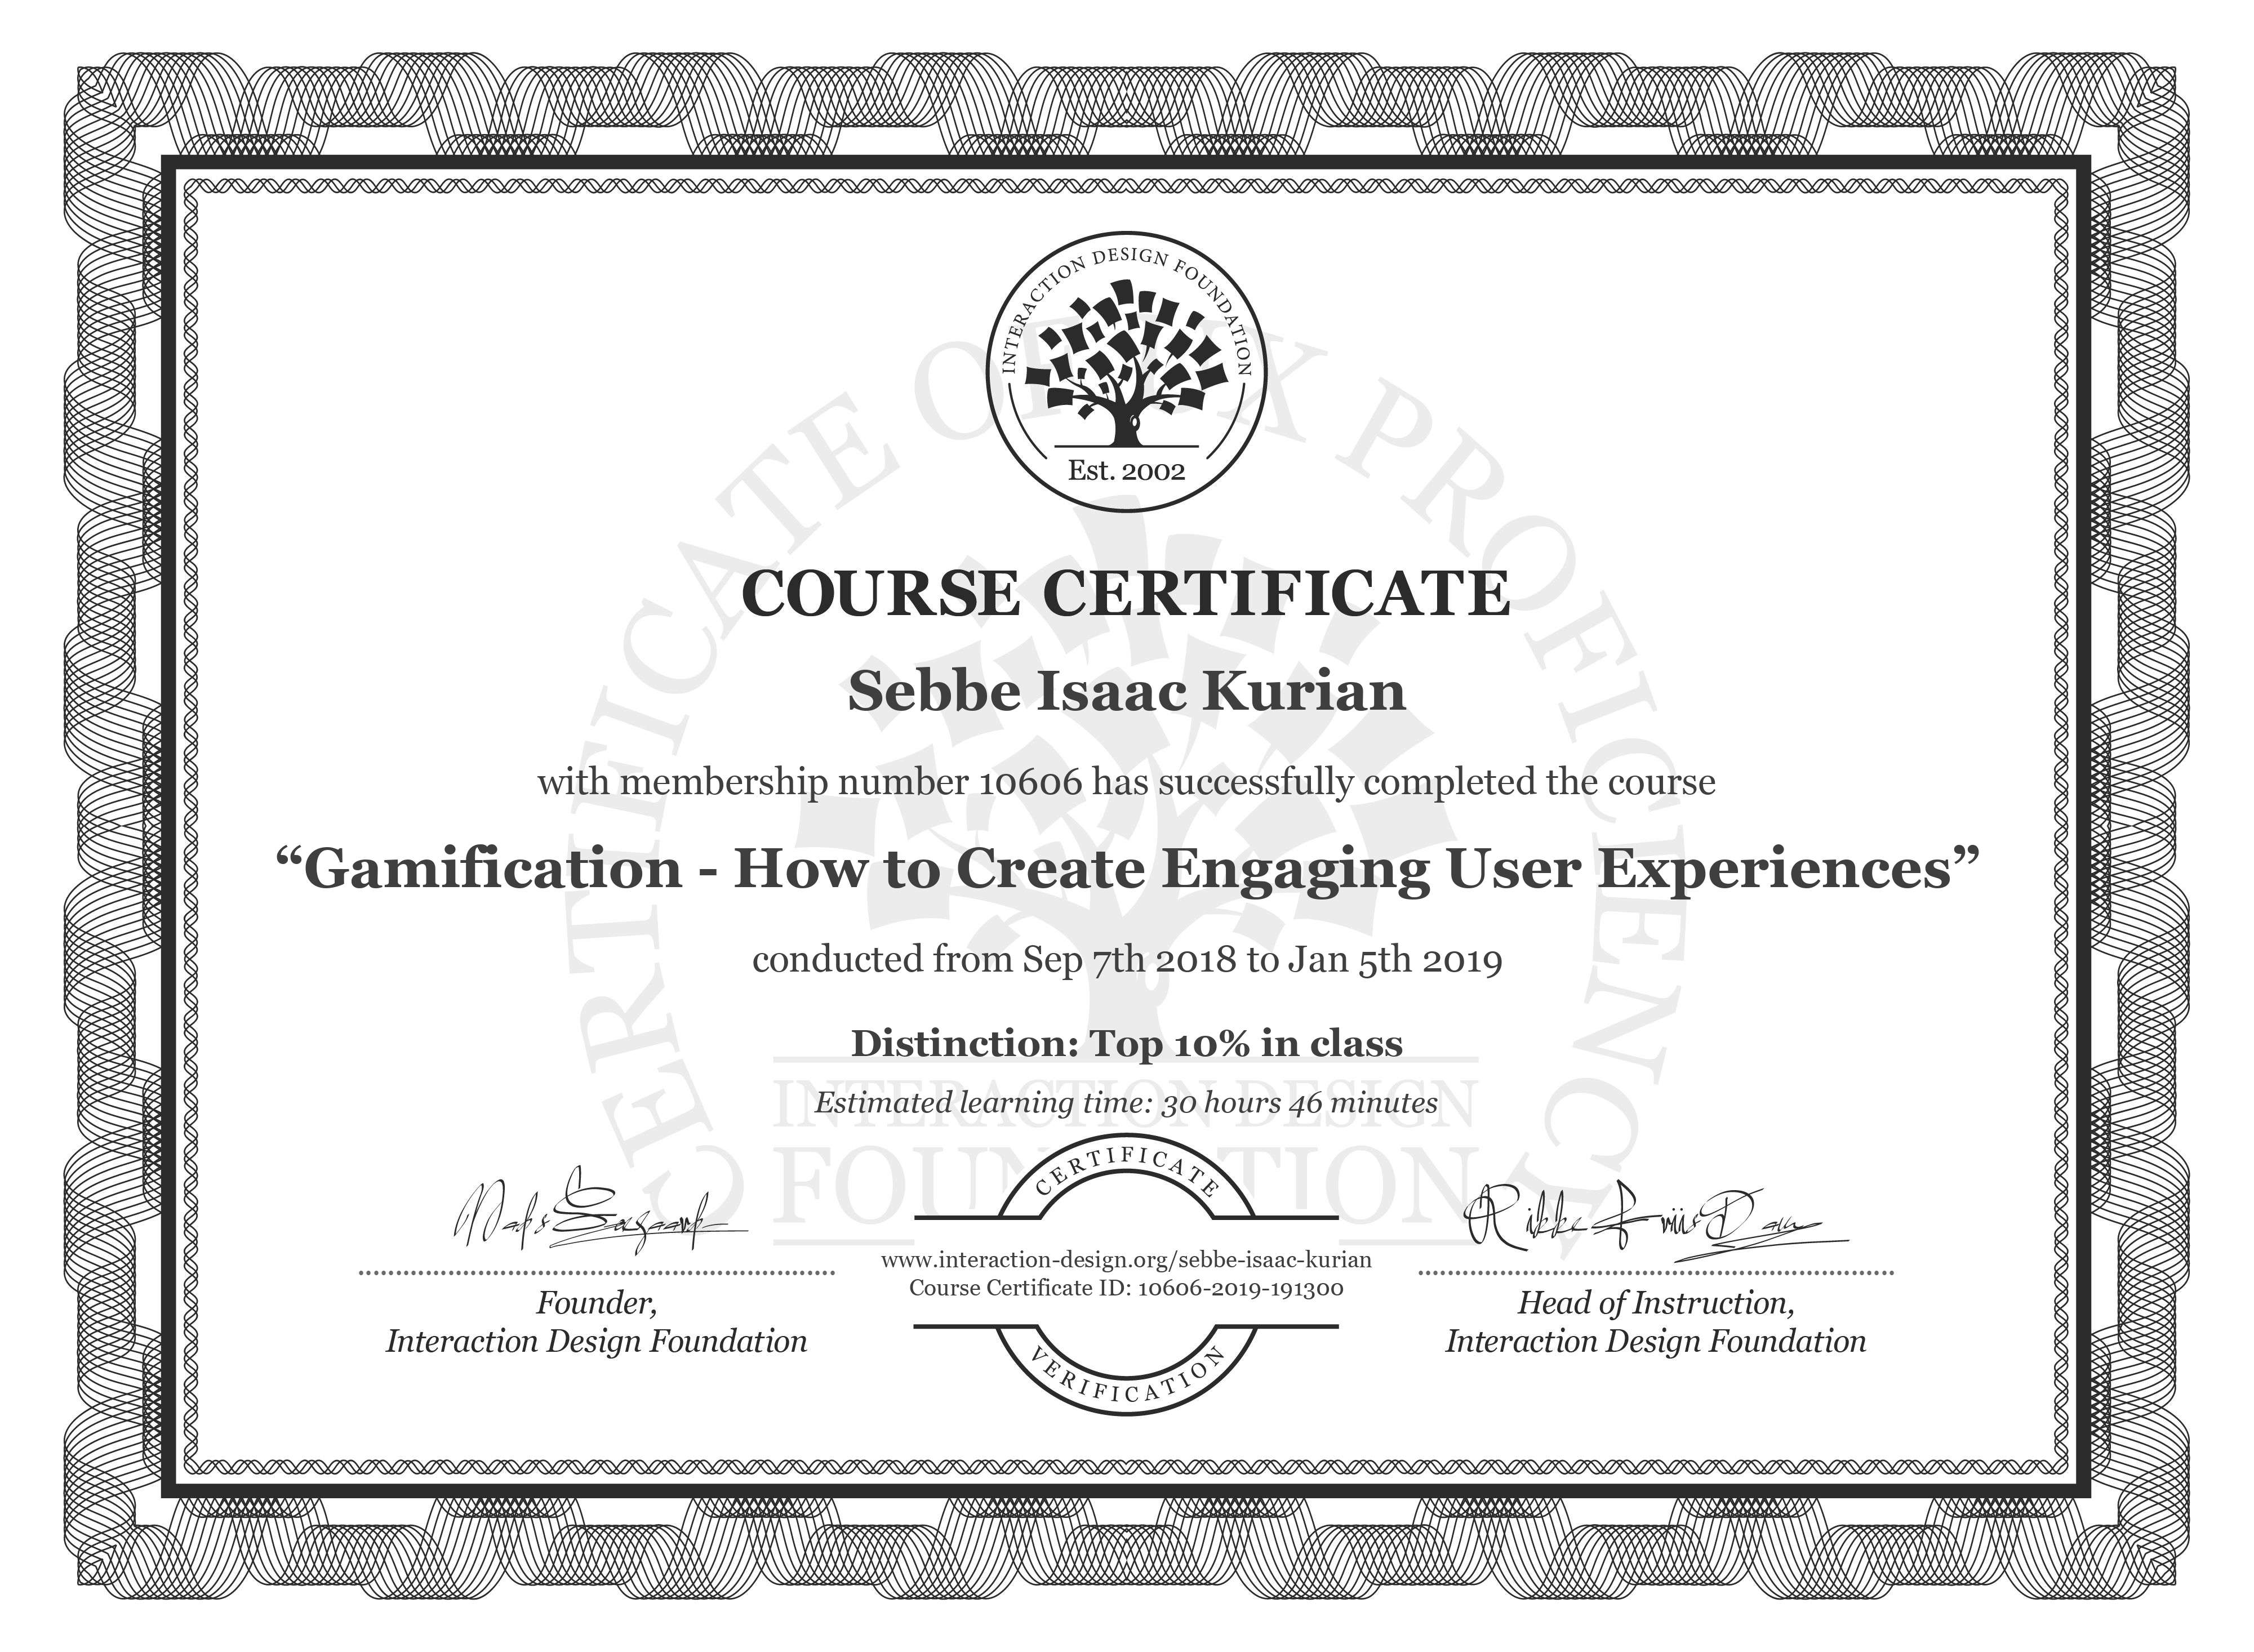 Sebbe Isaac Kurian's Course Certificate: Gamification – Creating Addictive User Experiences